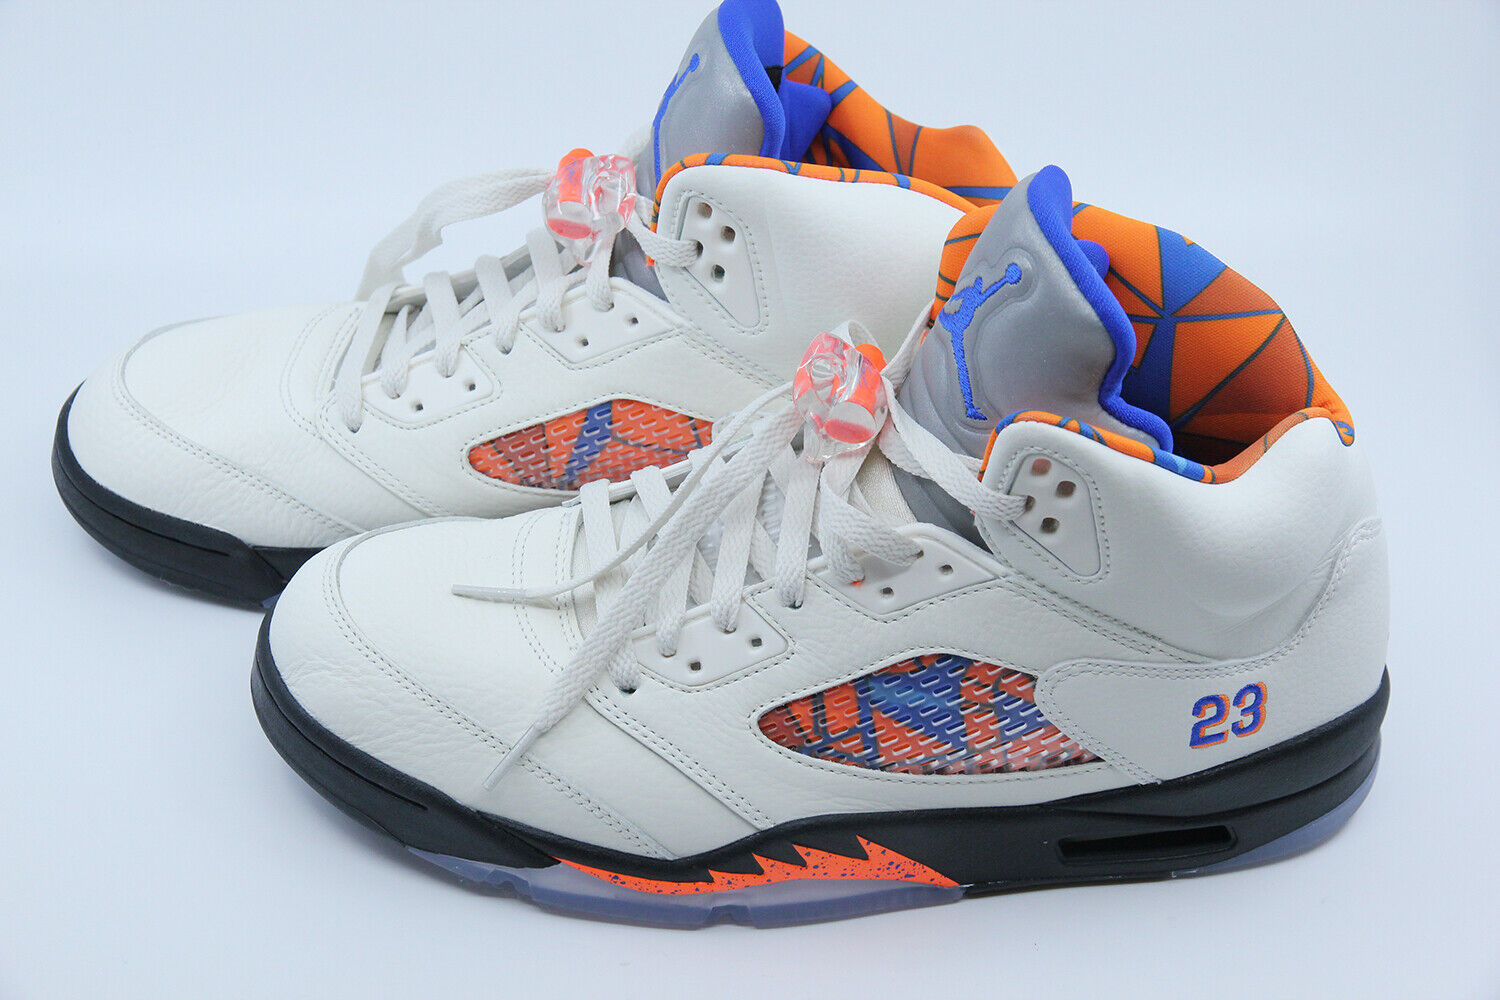 dcdb908ee1 Air Jordan 5 International Flight Size 11 290cm 136027-148 Nike RETRO  nvosod6331-Men's Trainers